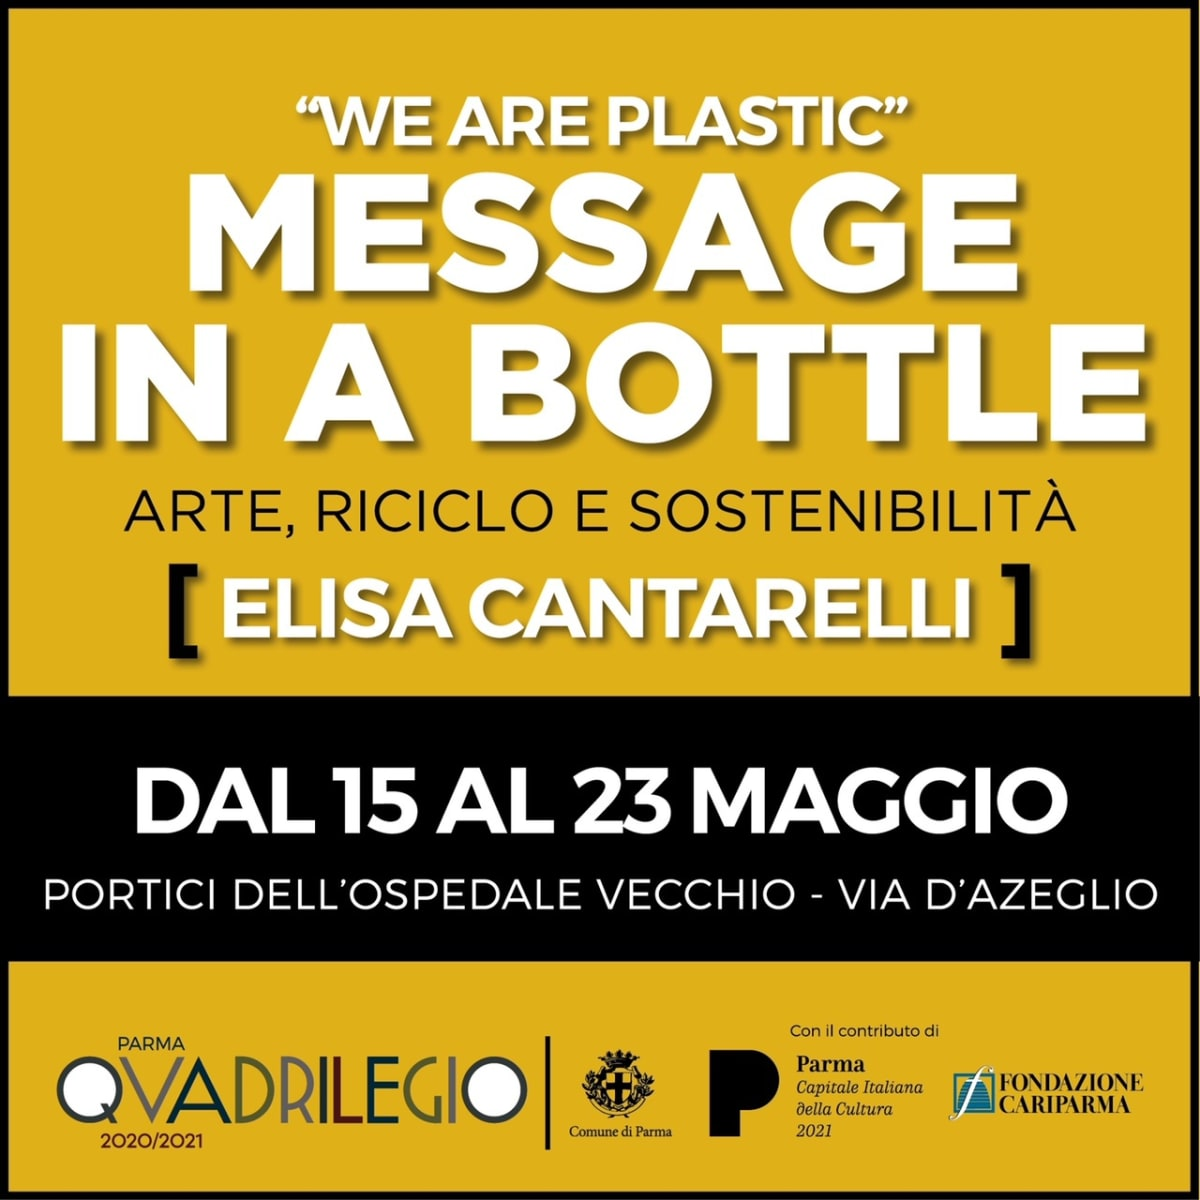 'We are Plastic - Message in a Bottle' by Elisa Cantarelli